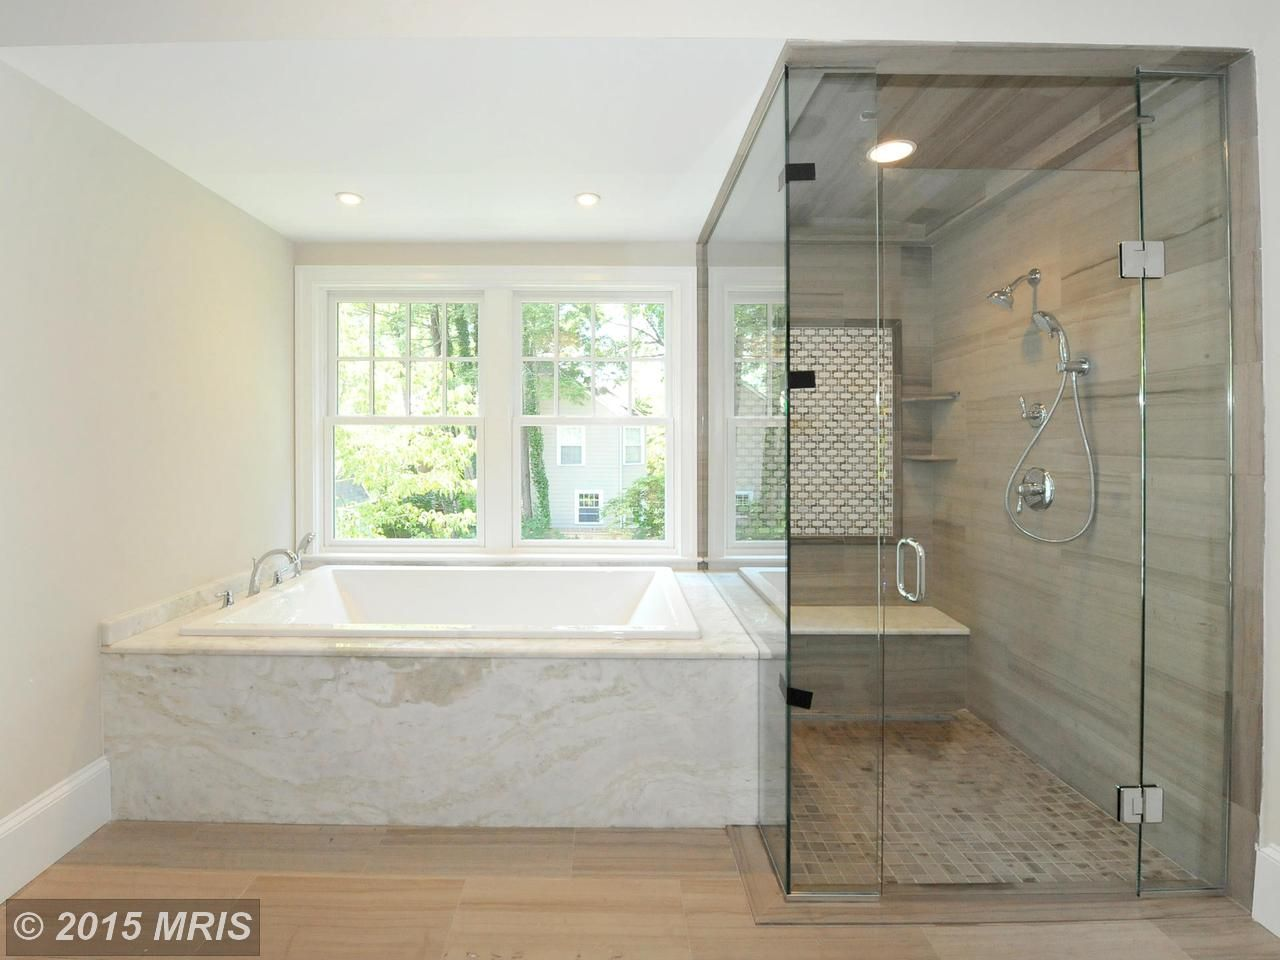 Sold or expired (54946295) in 2020 Chevy chase, Building